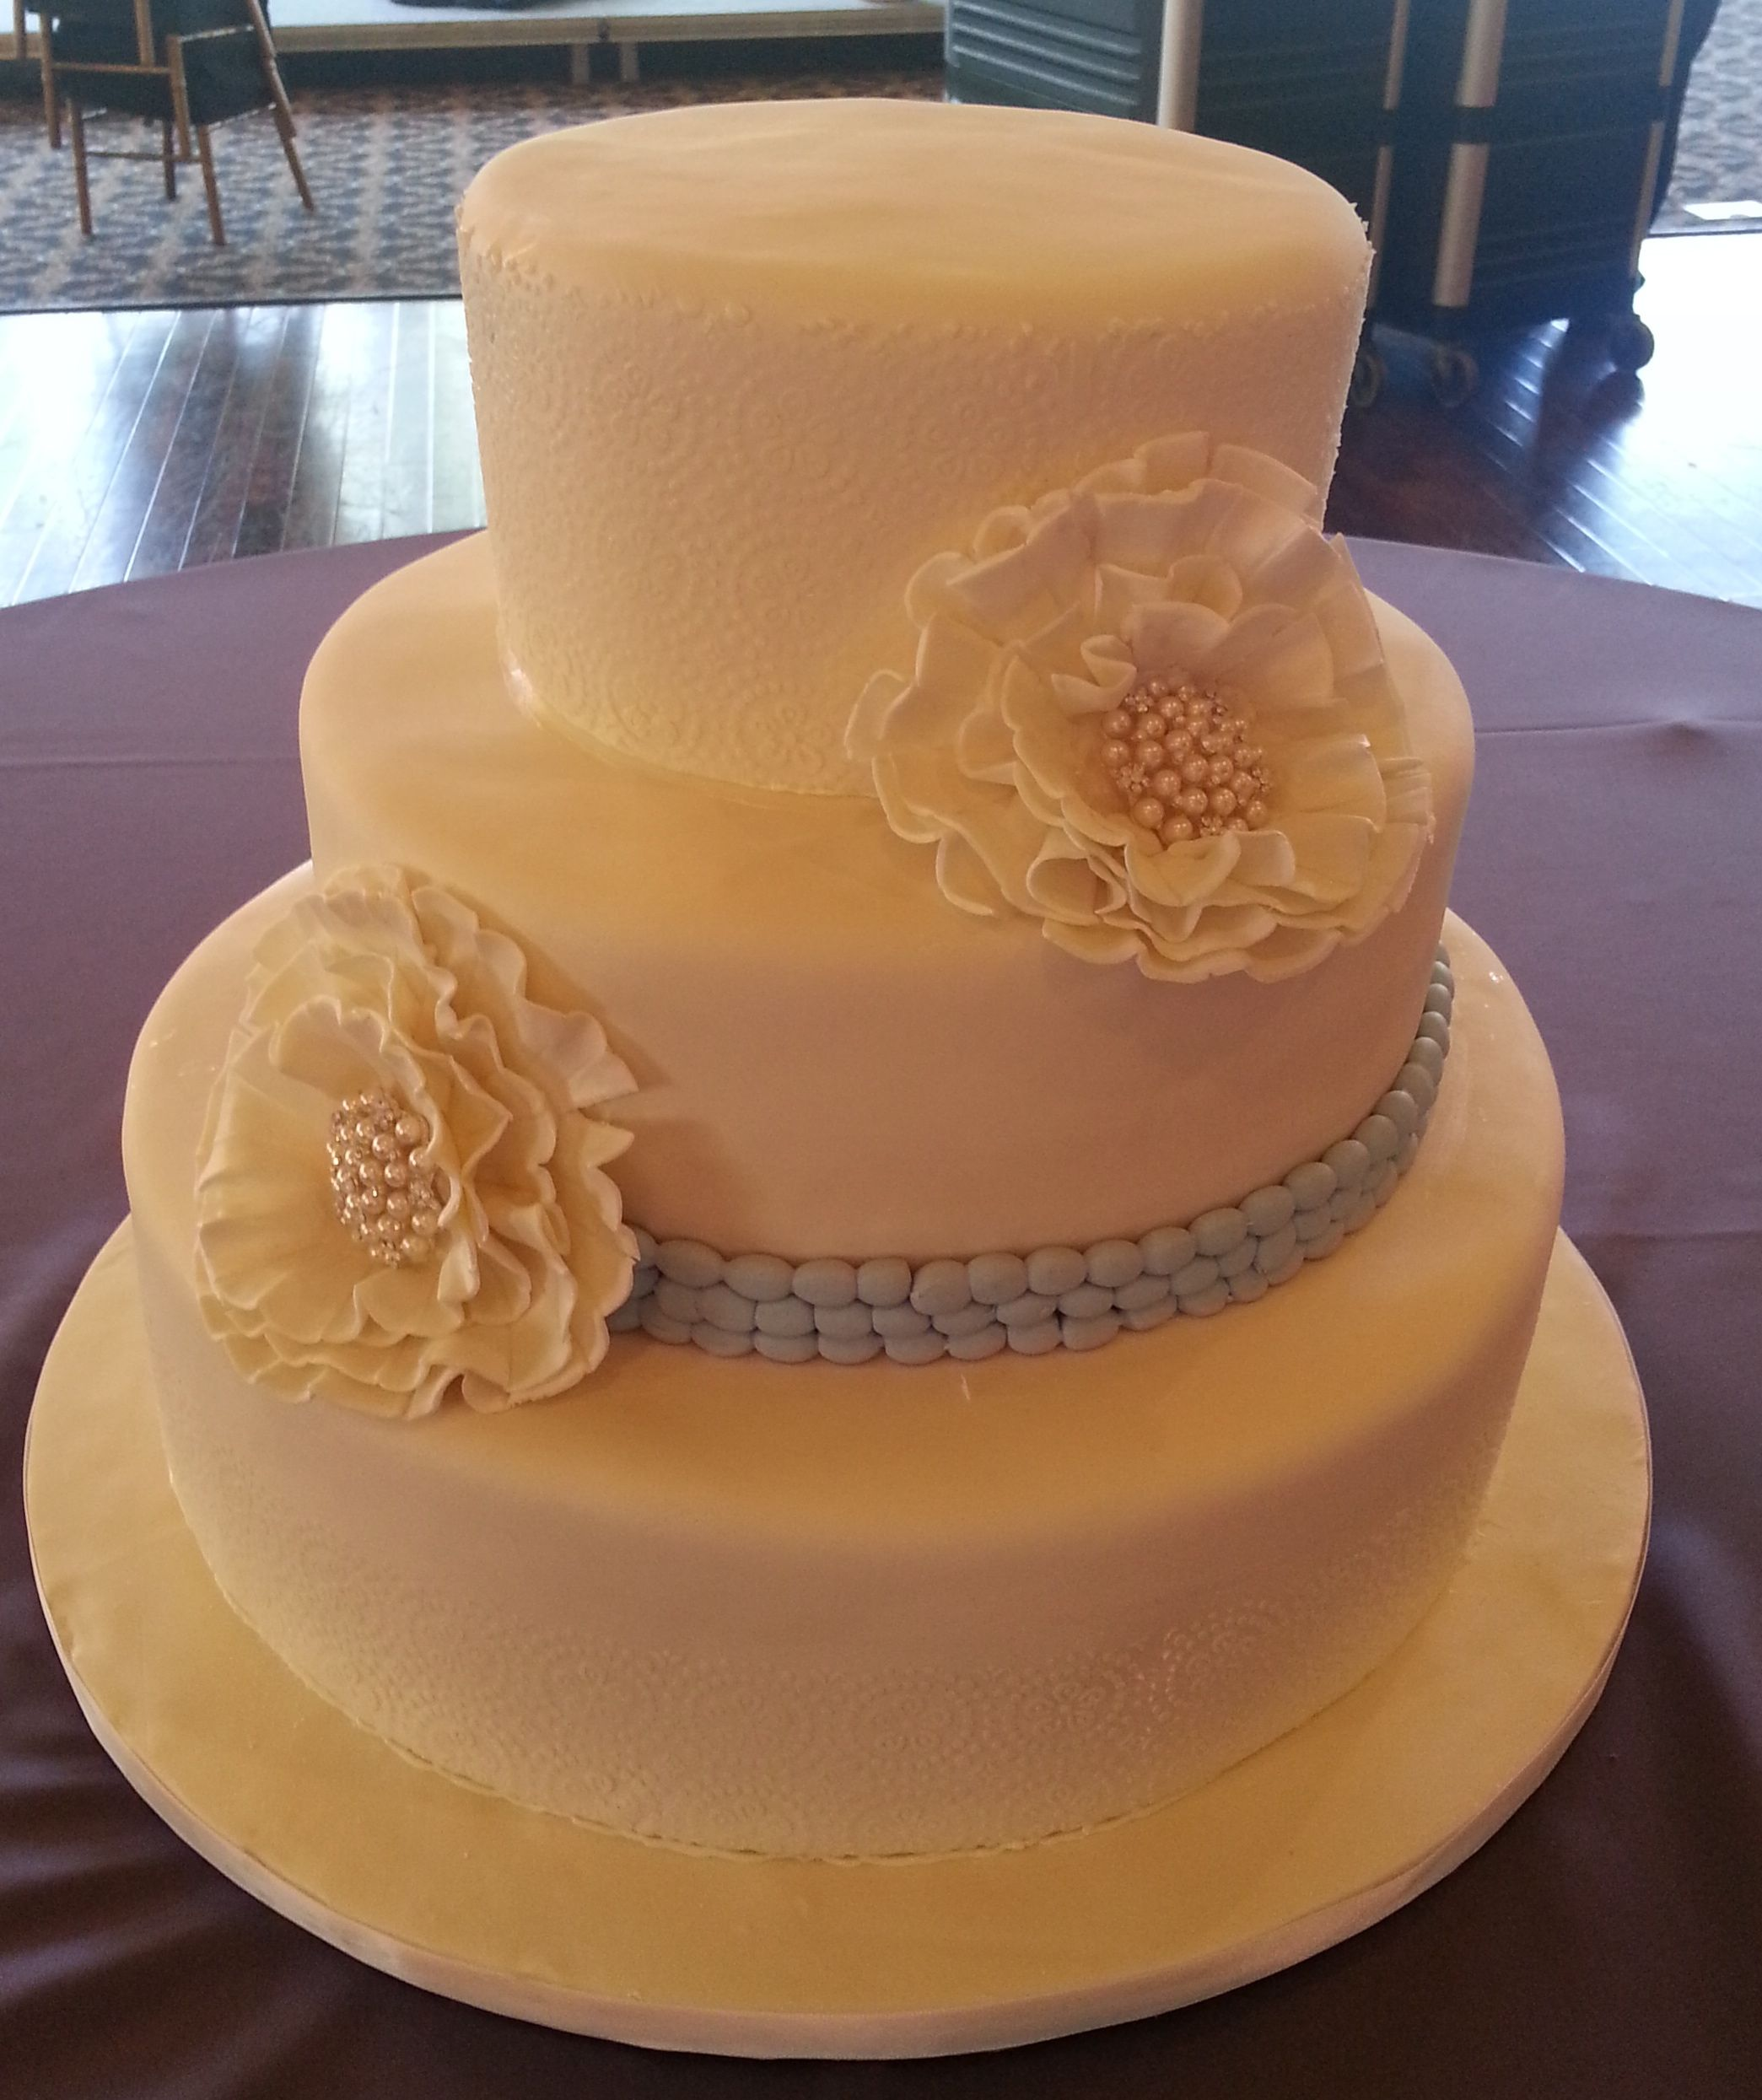 Fondant Flowers For Wedding Cakes: Calumet Bakery Ivory And Pearl With Large Fondant Flowers